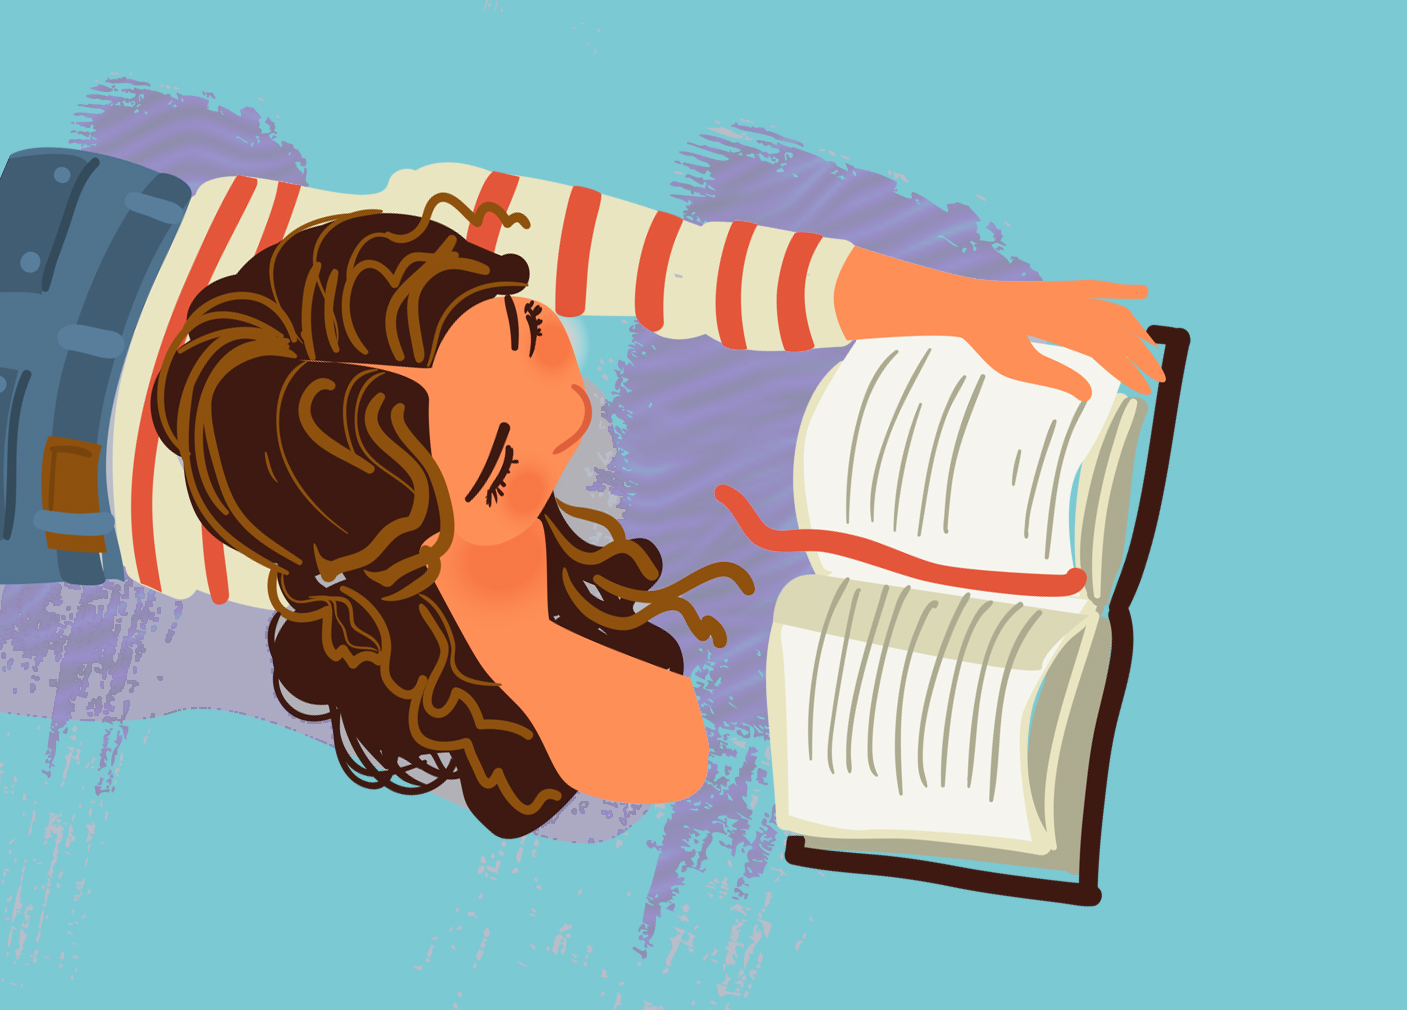 15 Great Books to Help You Relax and De-Stress